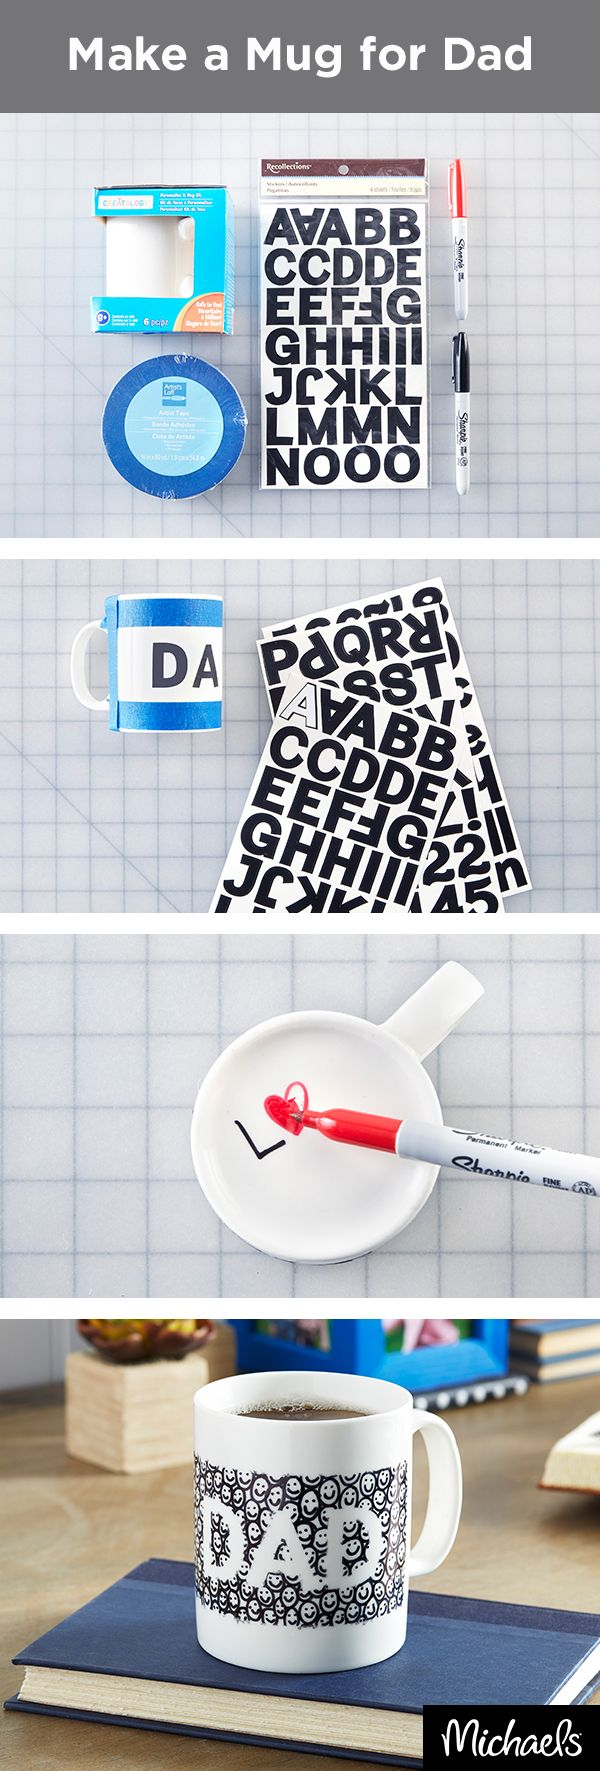 """Doodle Dad a new mug for Father's Day in just a few simple steps. After washing and drying the mug, tape off the top and bottom & add adhesive stickers to spell out """"Dad"""". Next, use a Sharpie® marker to fill in the space with smiley faces. Let your doodles dry and remove the stickers to reveal your masterpiece. Dad is sure to love this handmade mug! Find everything you need for this project at your local Michaels store and make this Father's Day gift one to remember."""